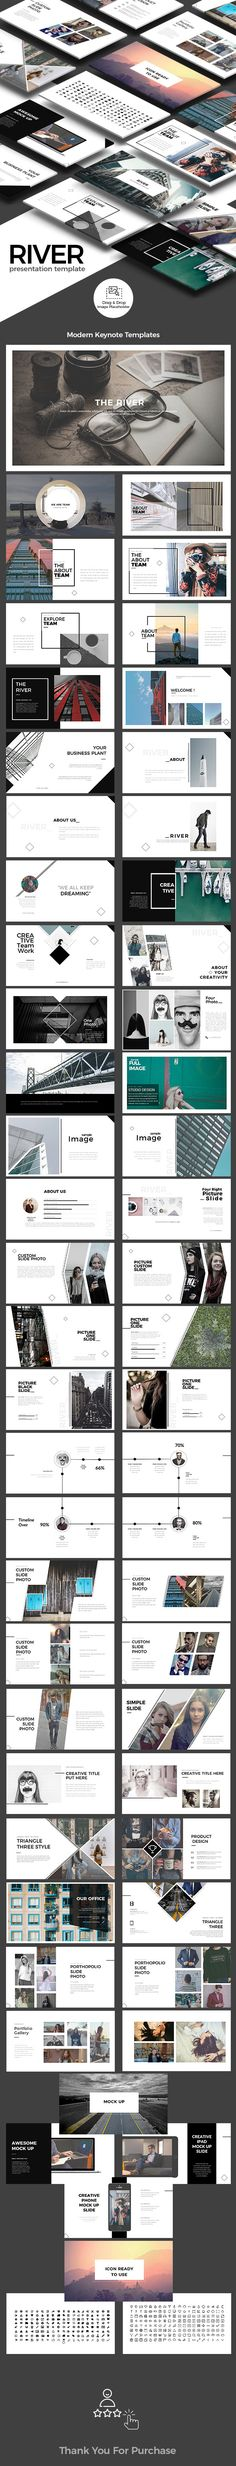 River Keynote Template — Keynote KEY #university #enterprise • Download ➝ https://graphicriver.net/item/river-keynote-template/19386271?ref=pxcr